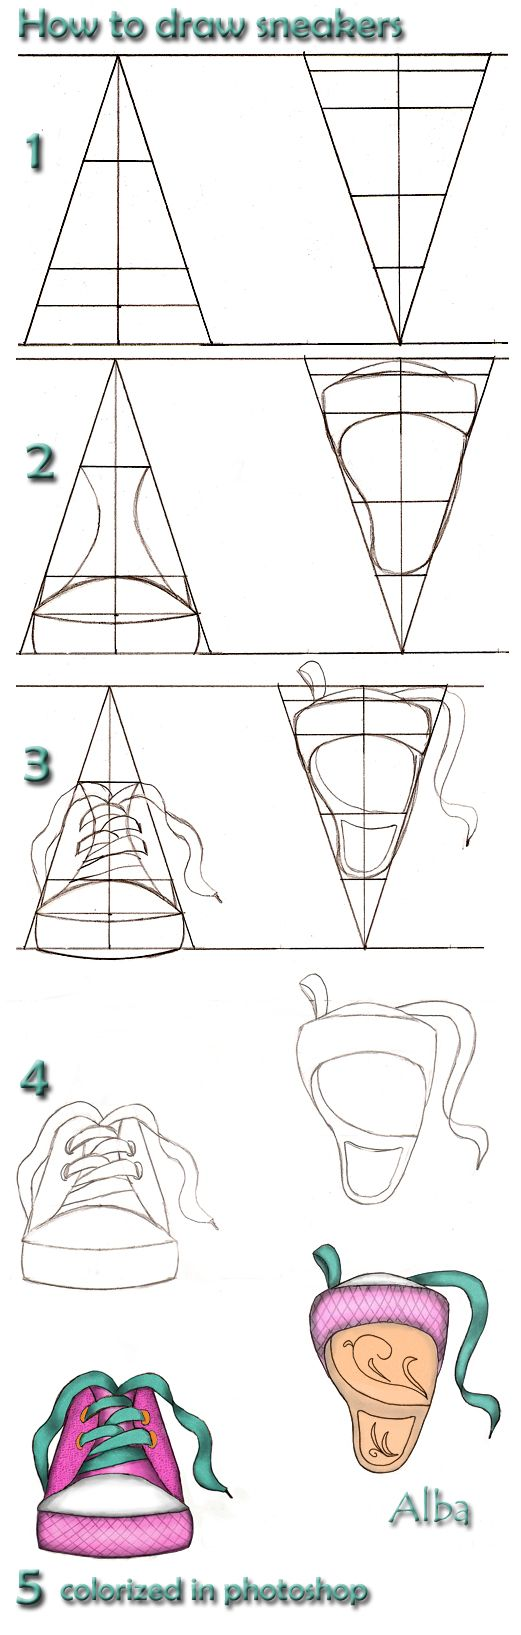 How To Draw High Heels See More Tutorial Sneakers By  Lamorghanaiantart On @deviantart